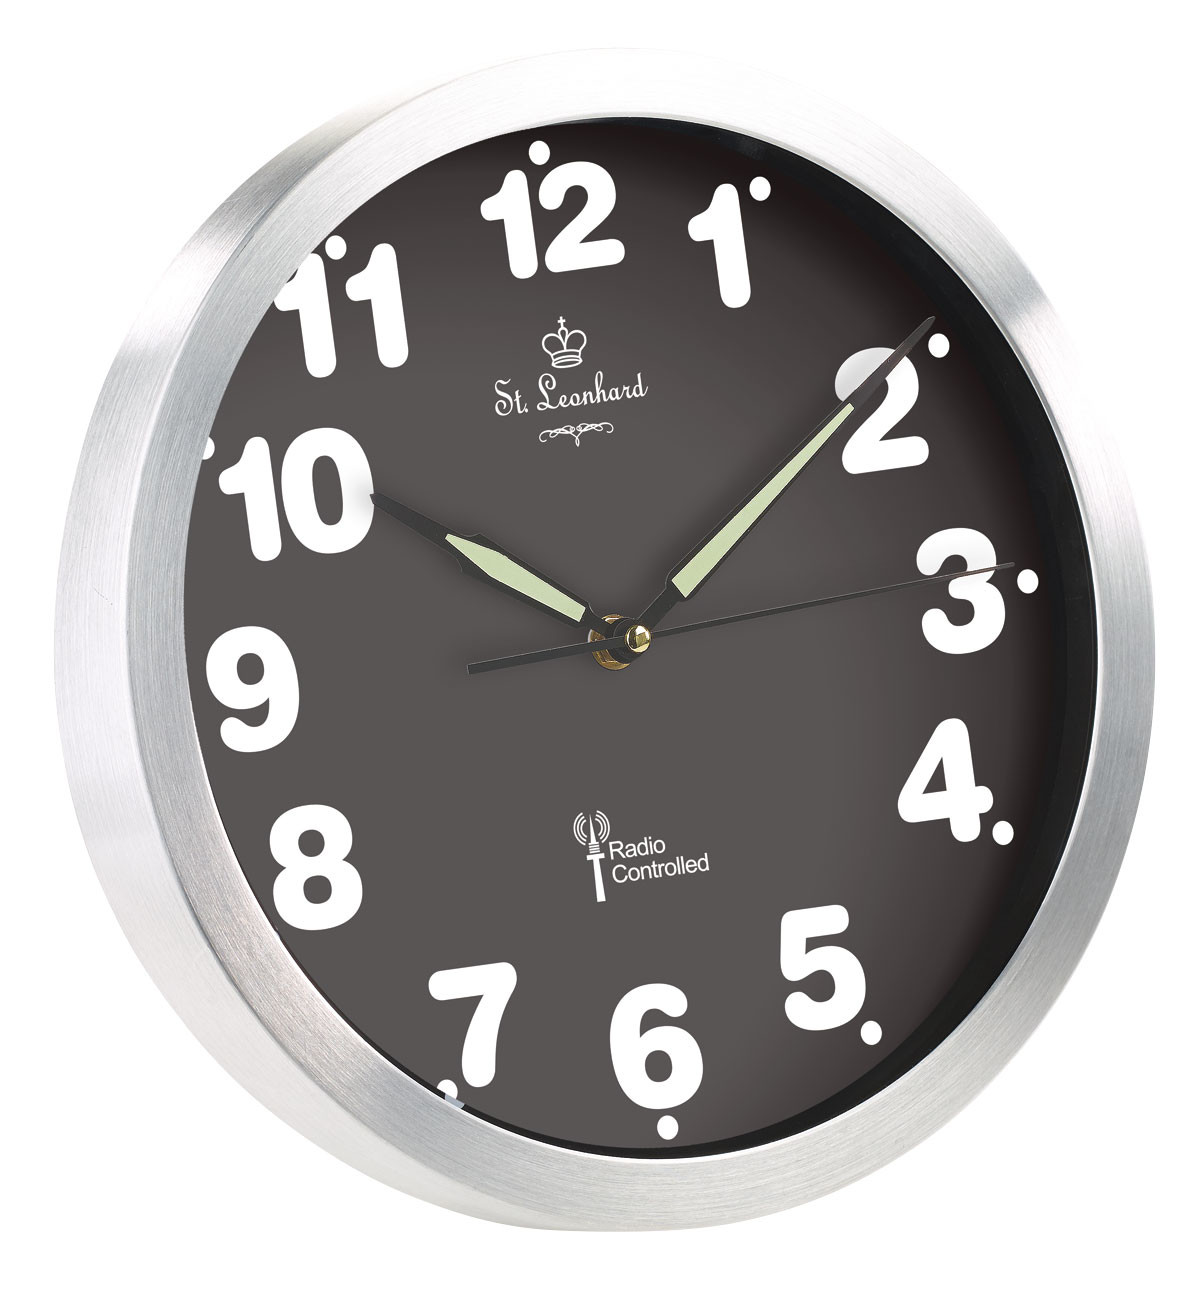 horloge murale radio pilot e quartz avec chiffres lumineux. Black Bedroom Furniture Sets. Home Design Ideas